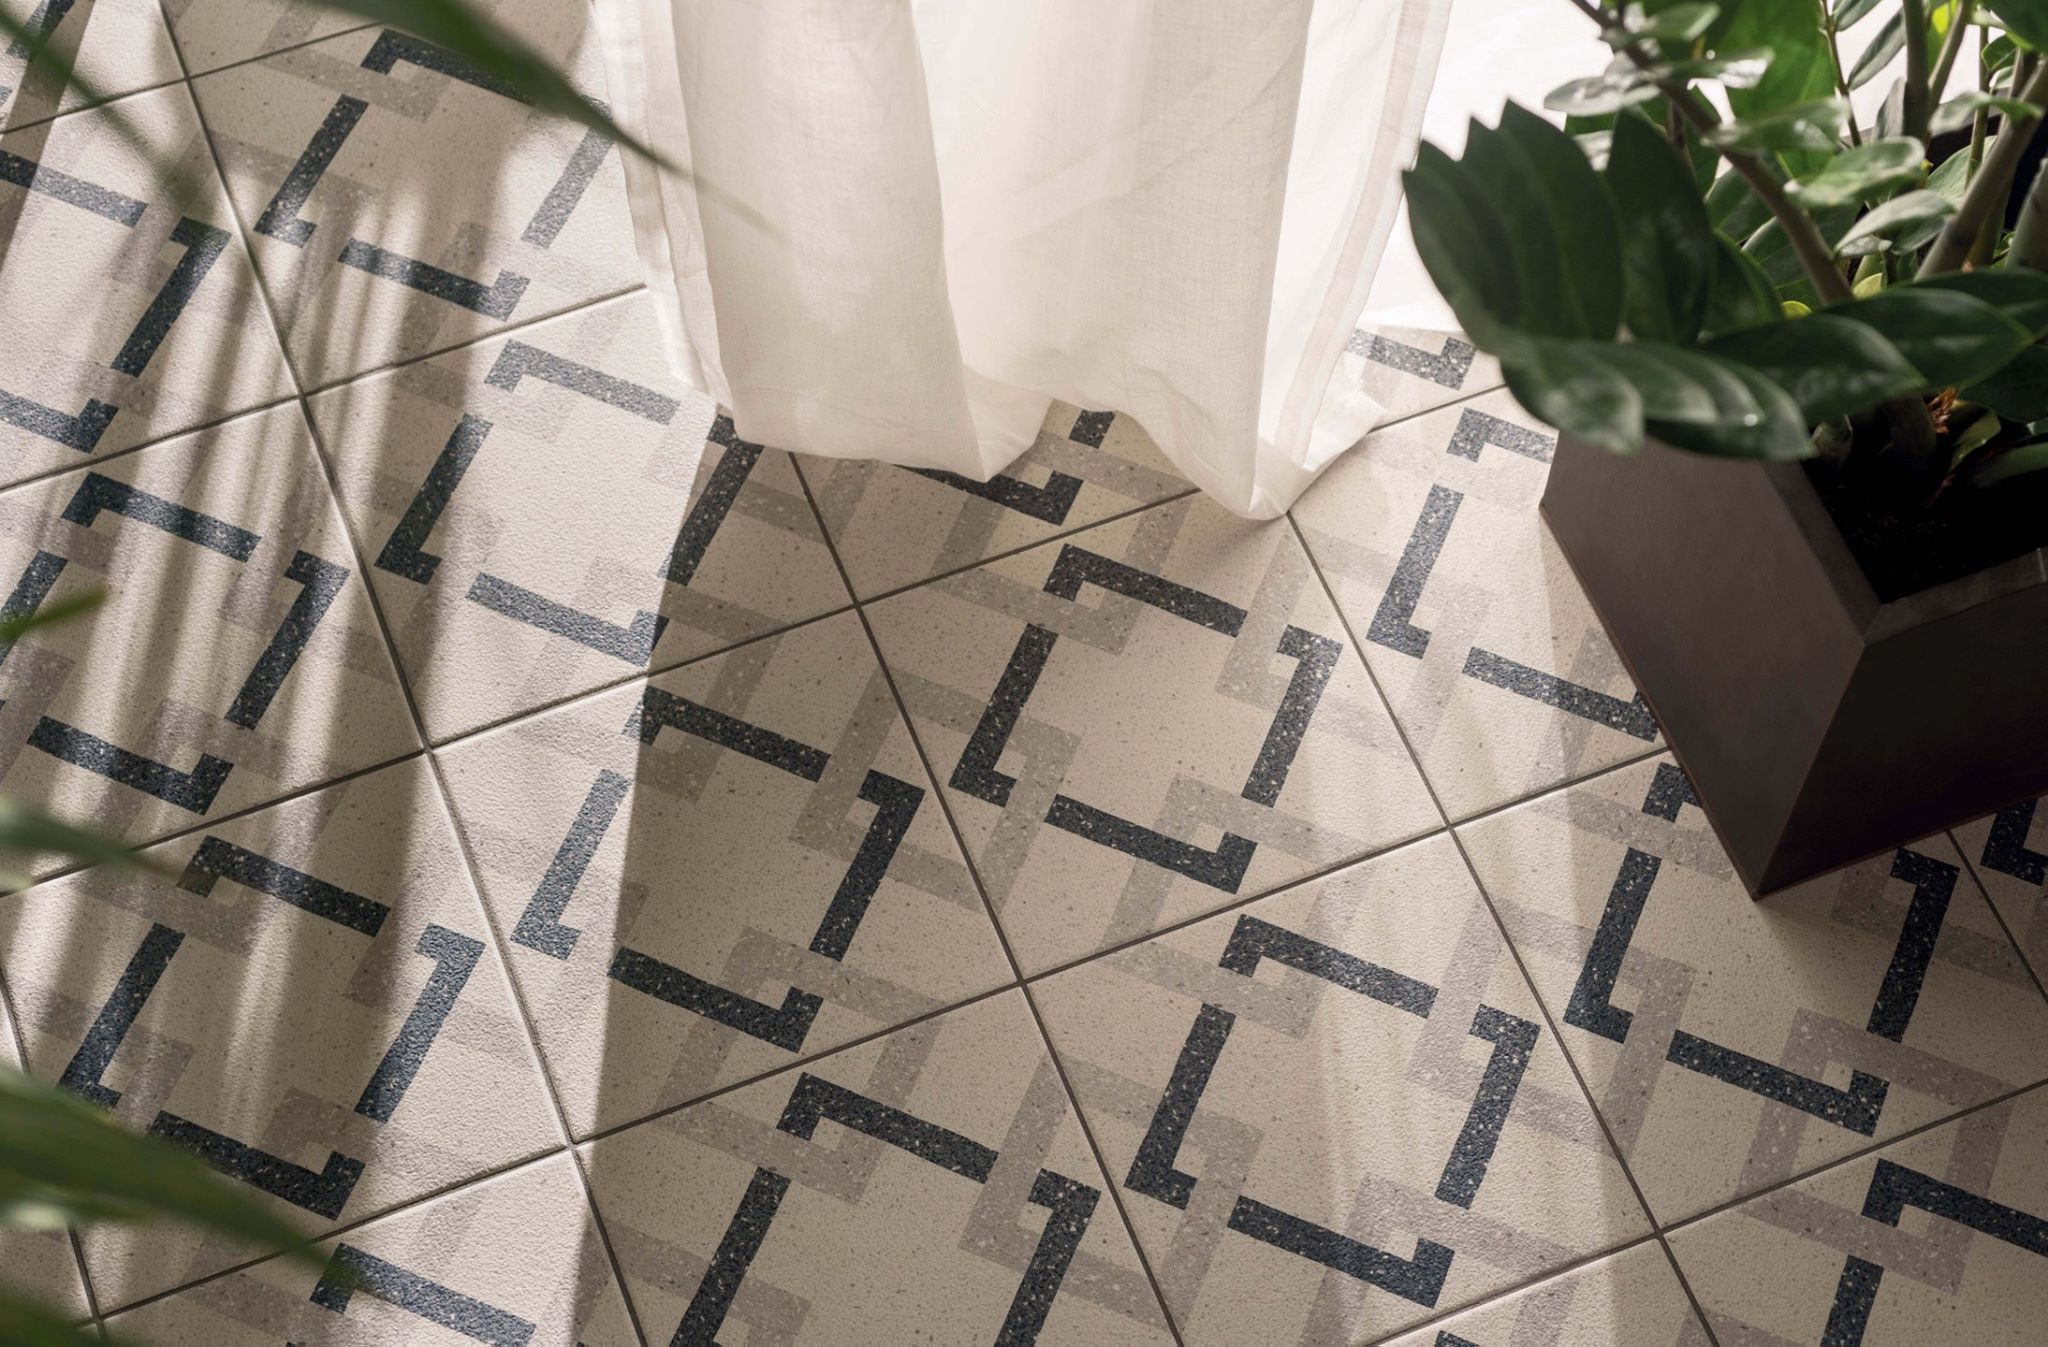 Marca corona srie forme marca corona srie forme lovely pattern floor tiles maybe ideal for a conservatory or orangery featuring succulent plants and pots dailygadgetfo Choice Image